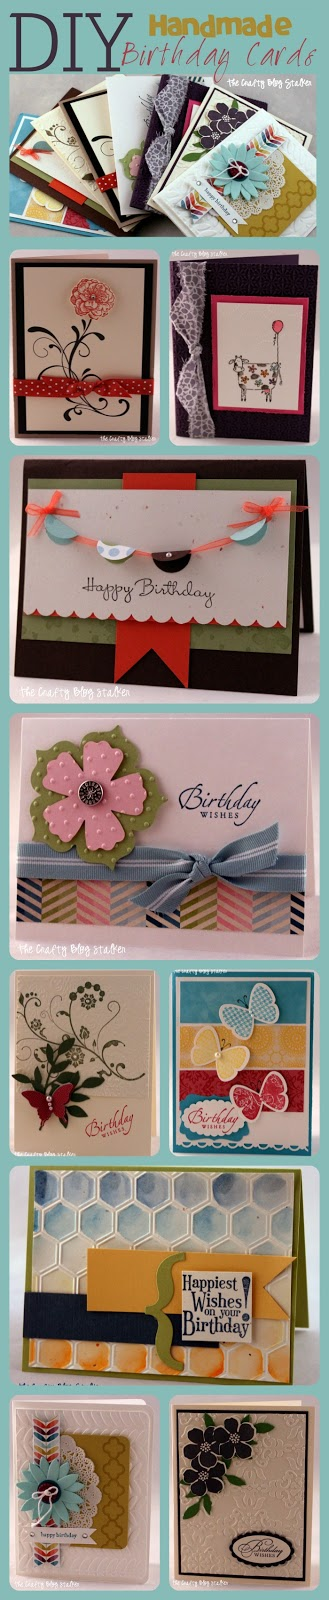 A Collage Of Images With 9 Different Handmade Birthday Cards